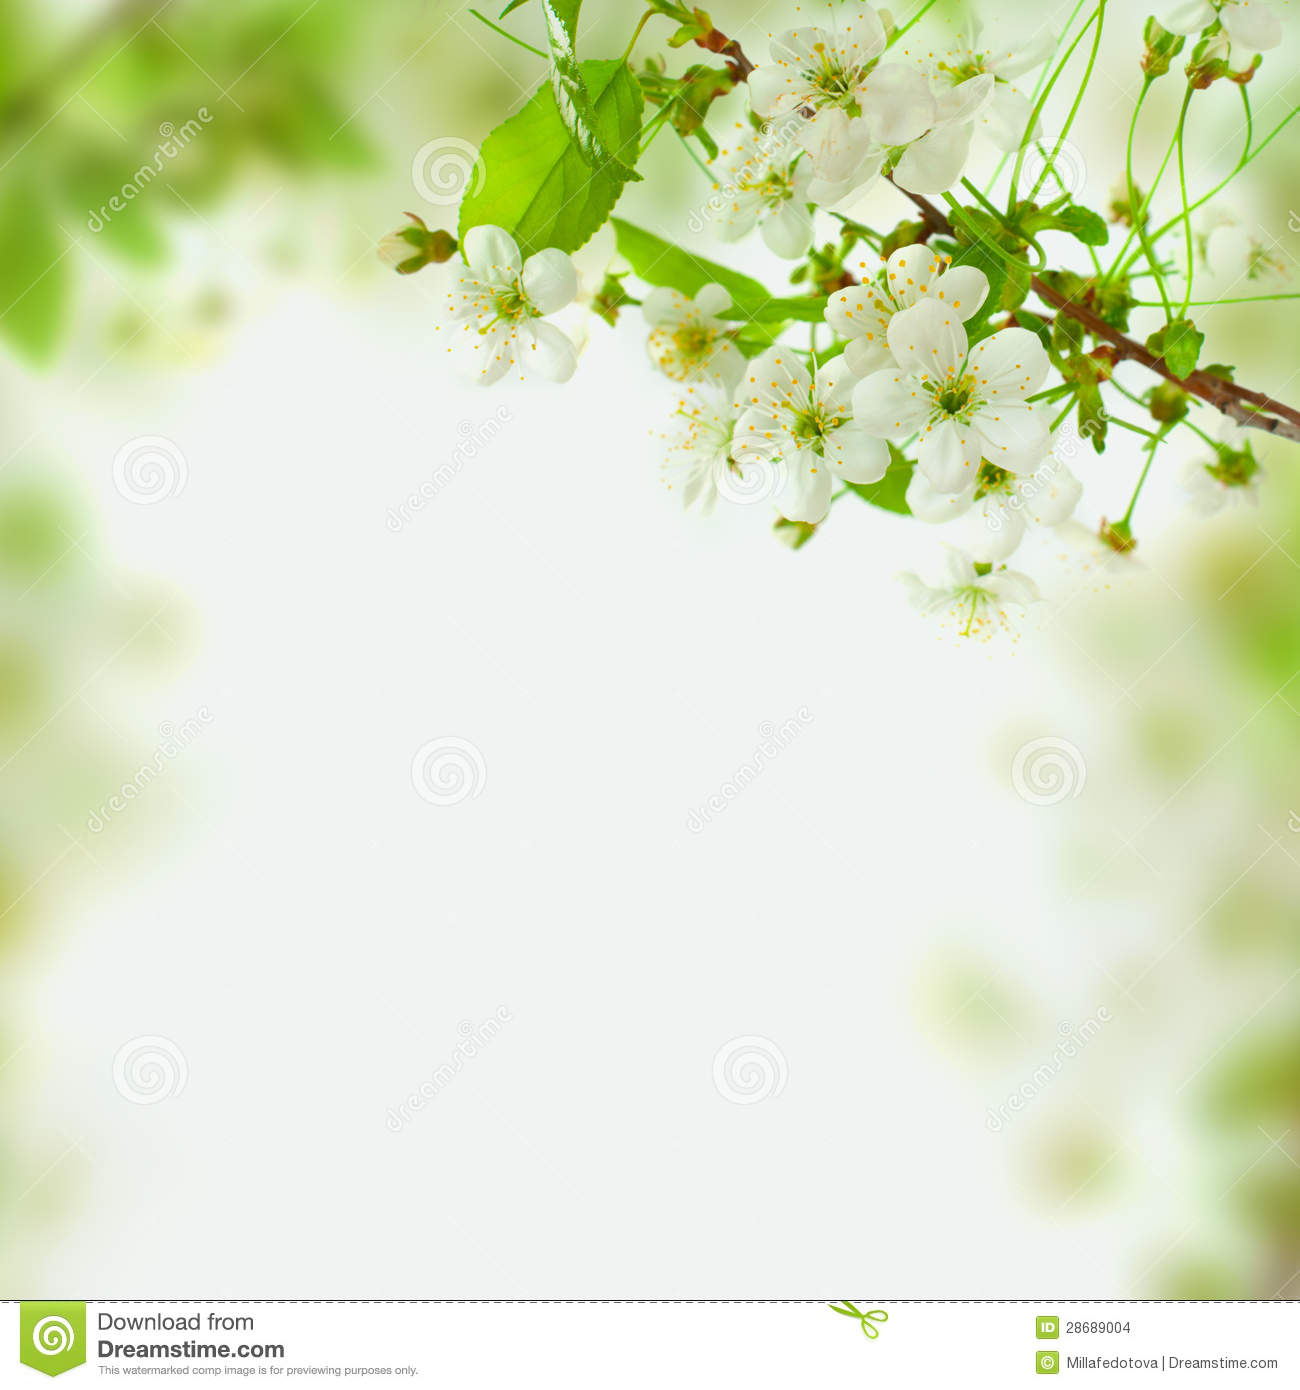 Falling Cherry Blossom Wallpaper Hd Spring Blossom Background Green Leaves And White Flowers